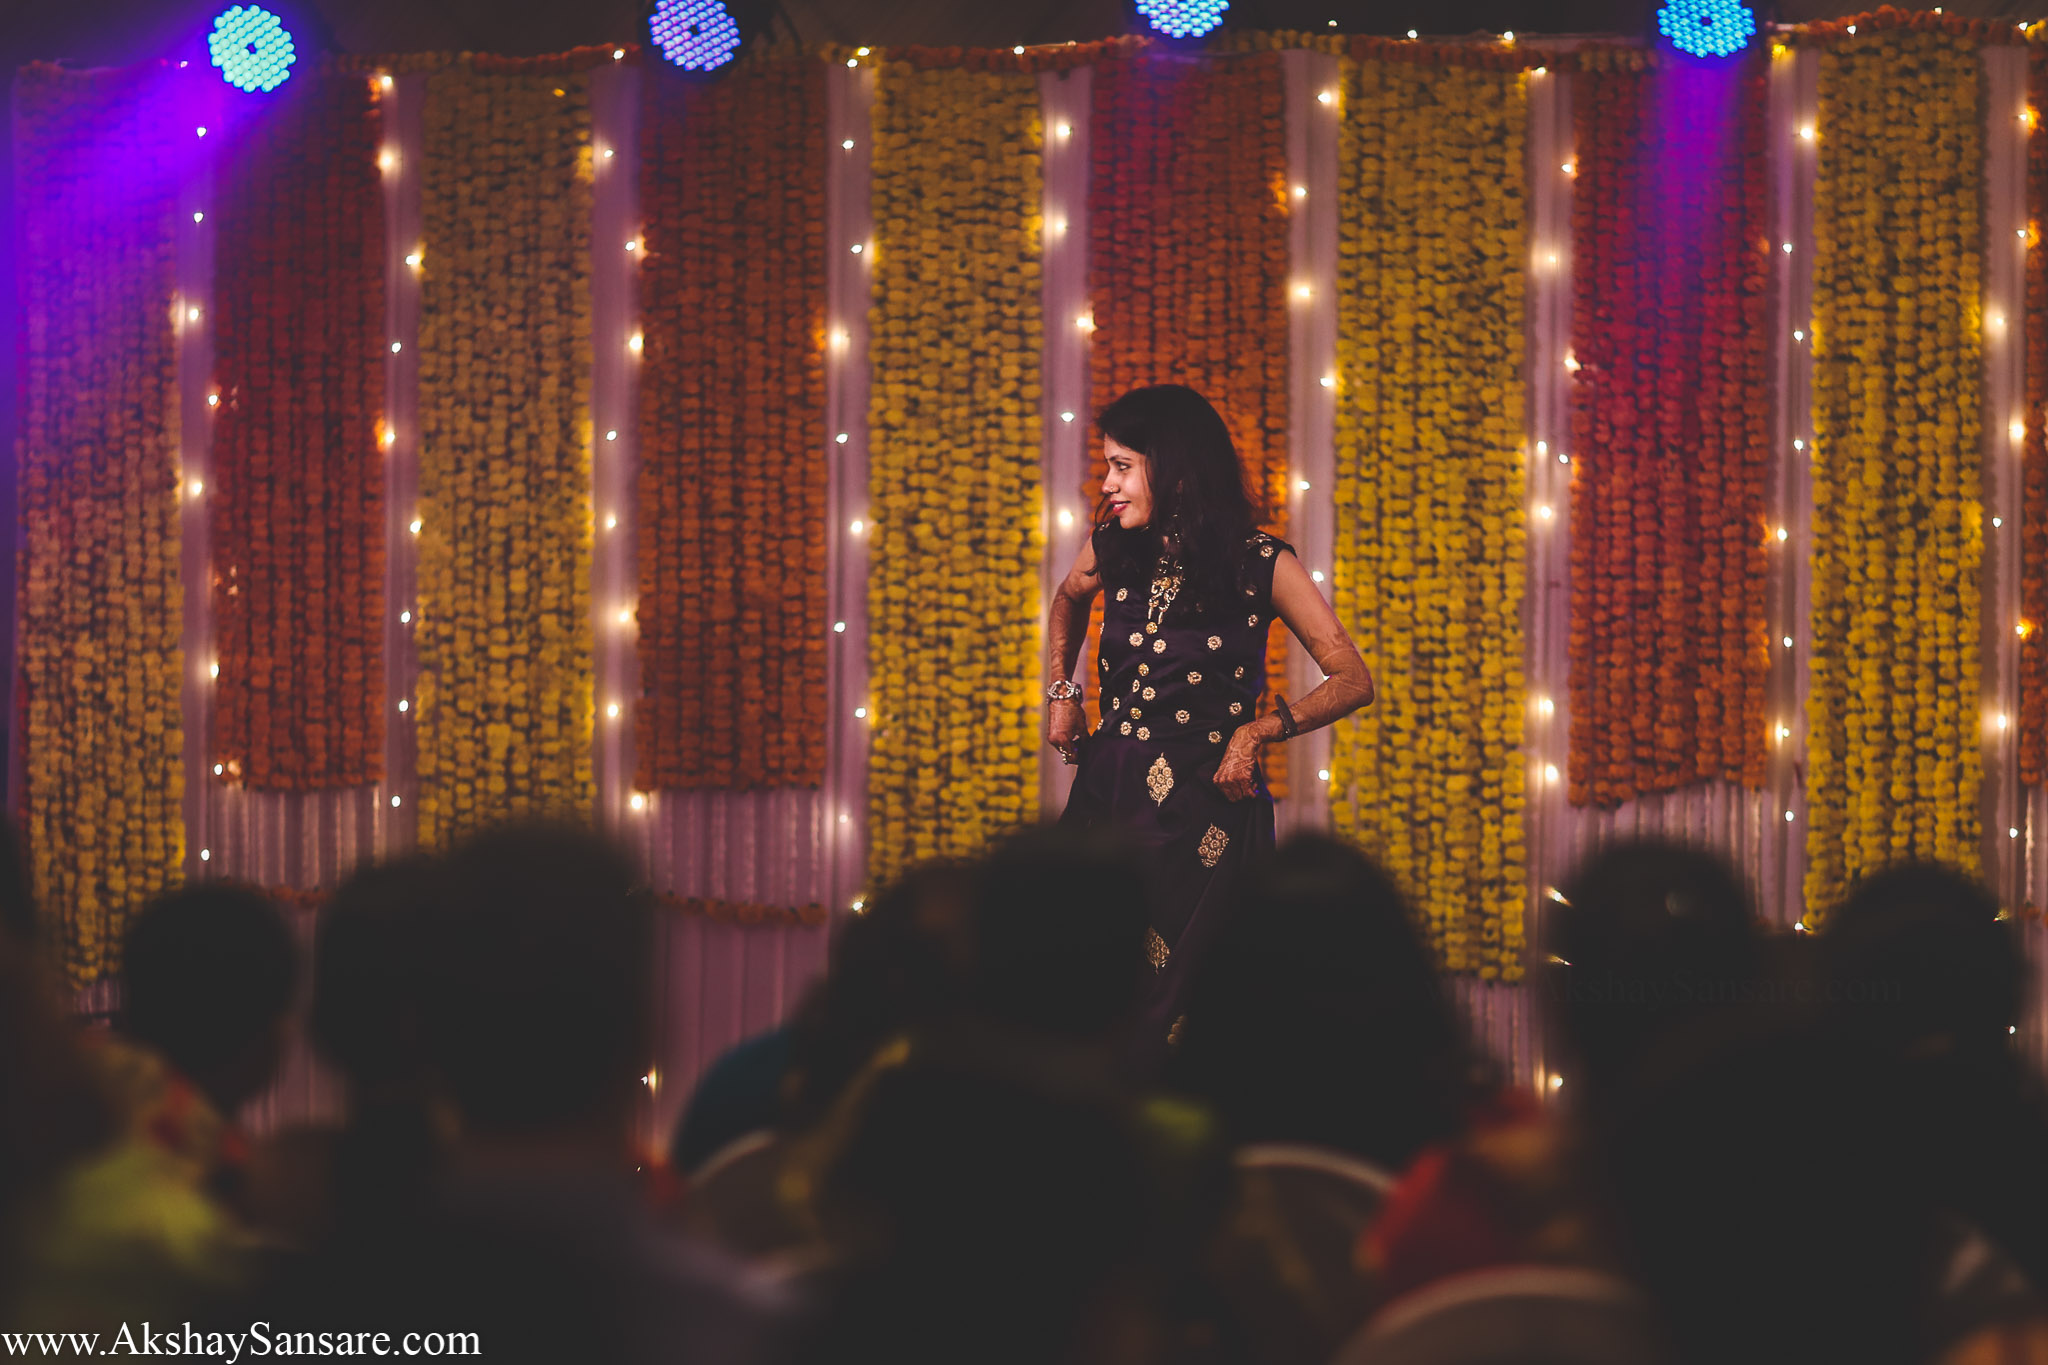 Ajay & Devika Akshay Sansare Photography Best Candid wedding photographer in mumbai india38.jpg